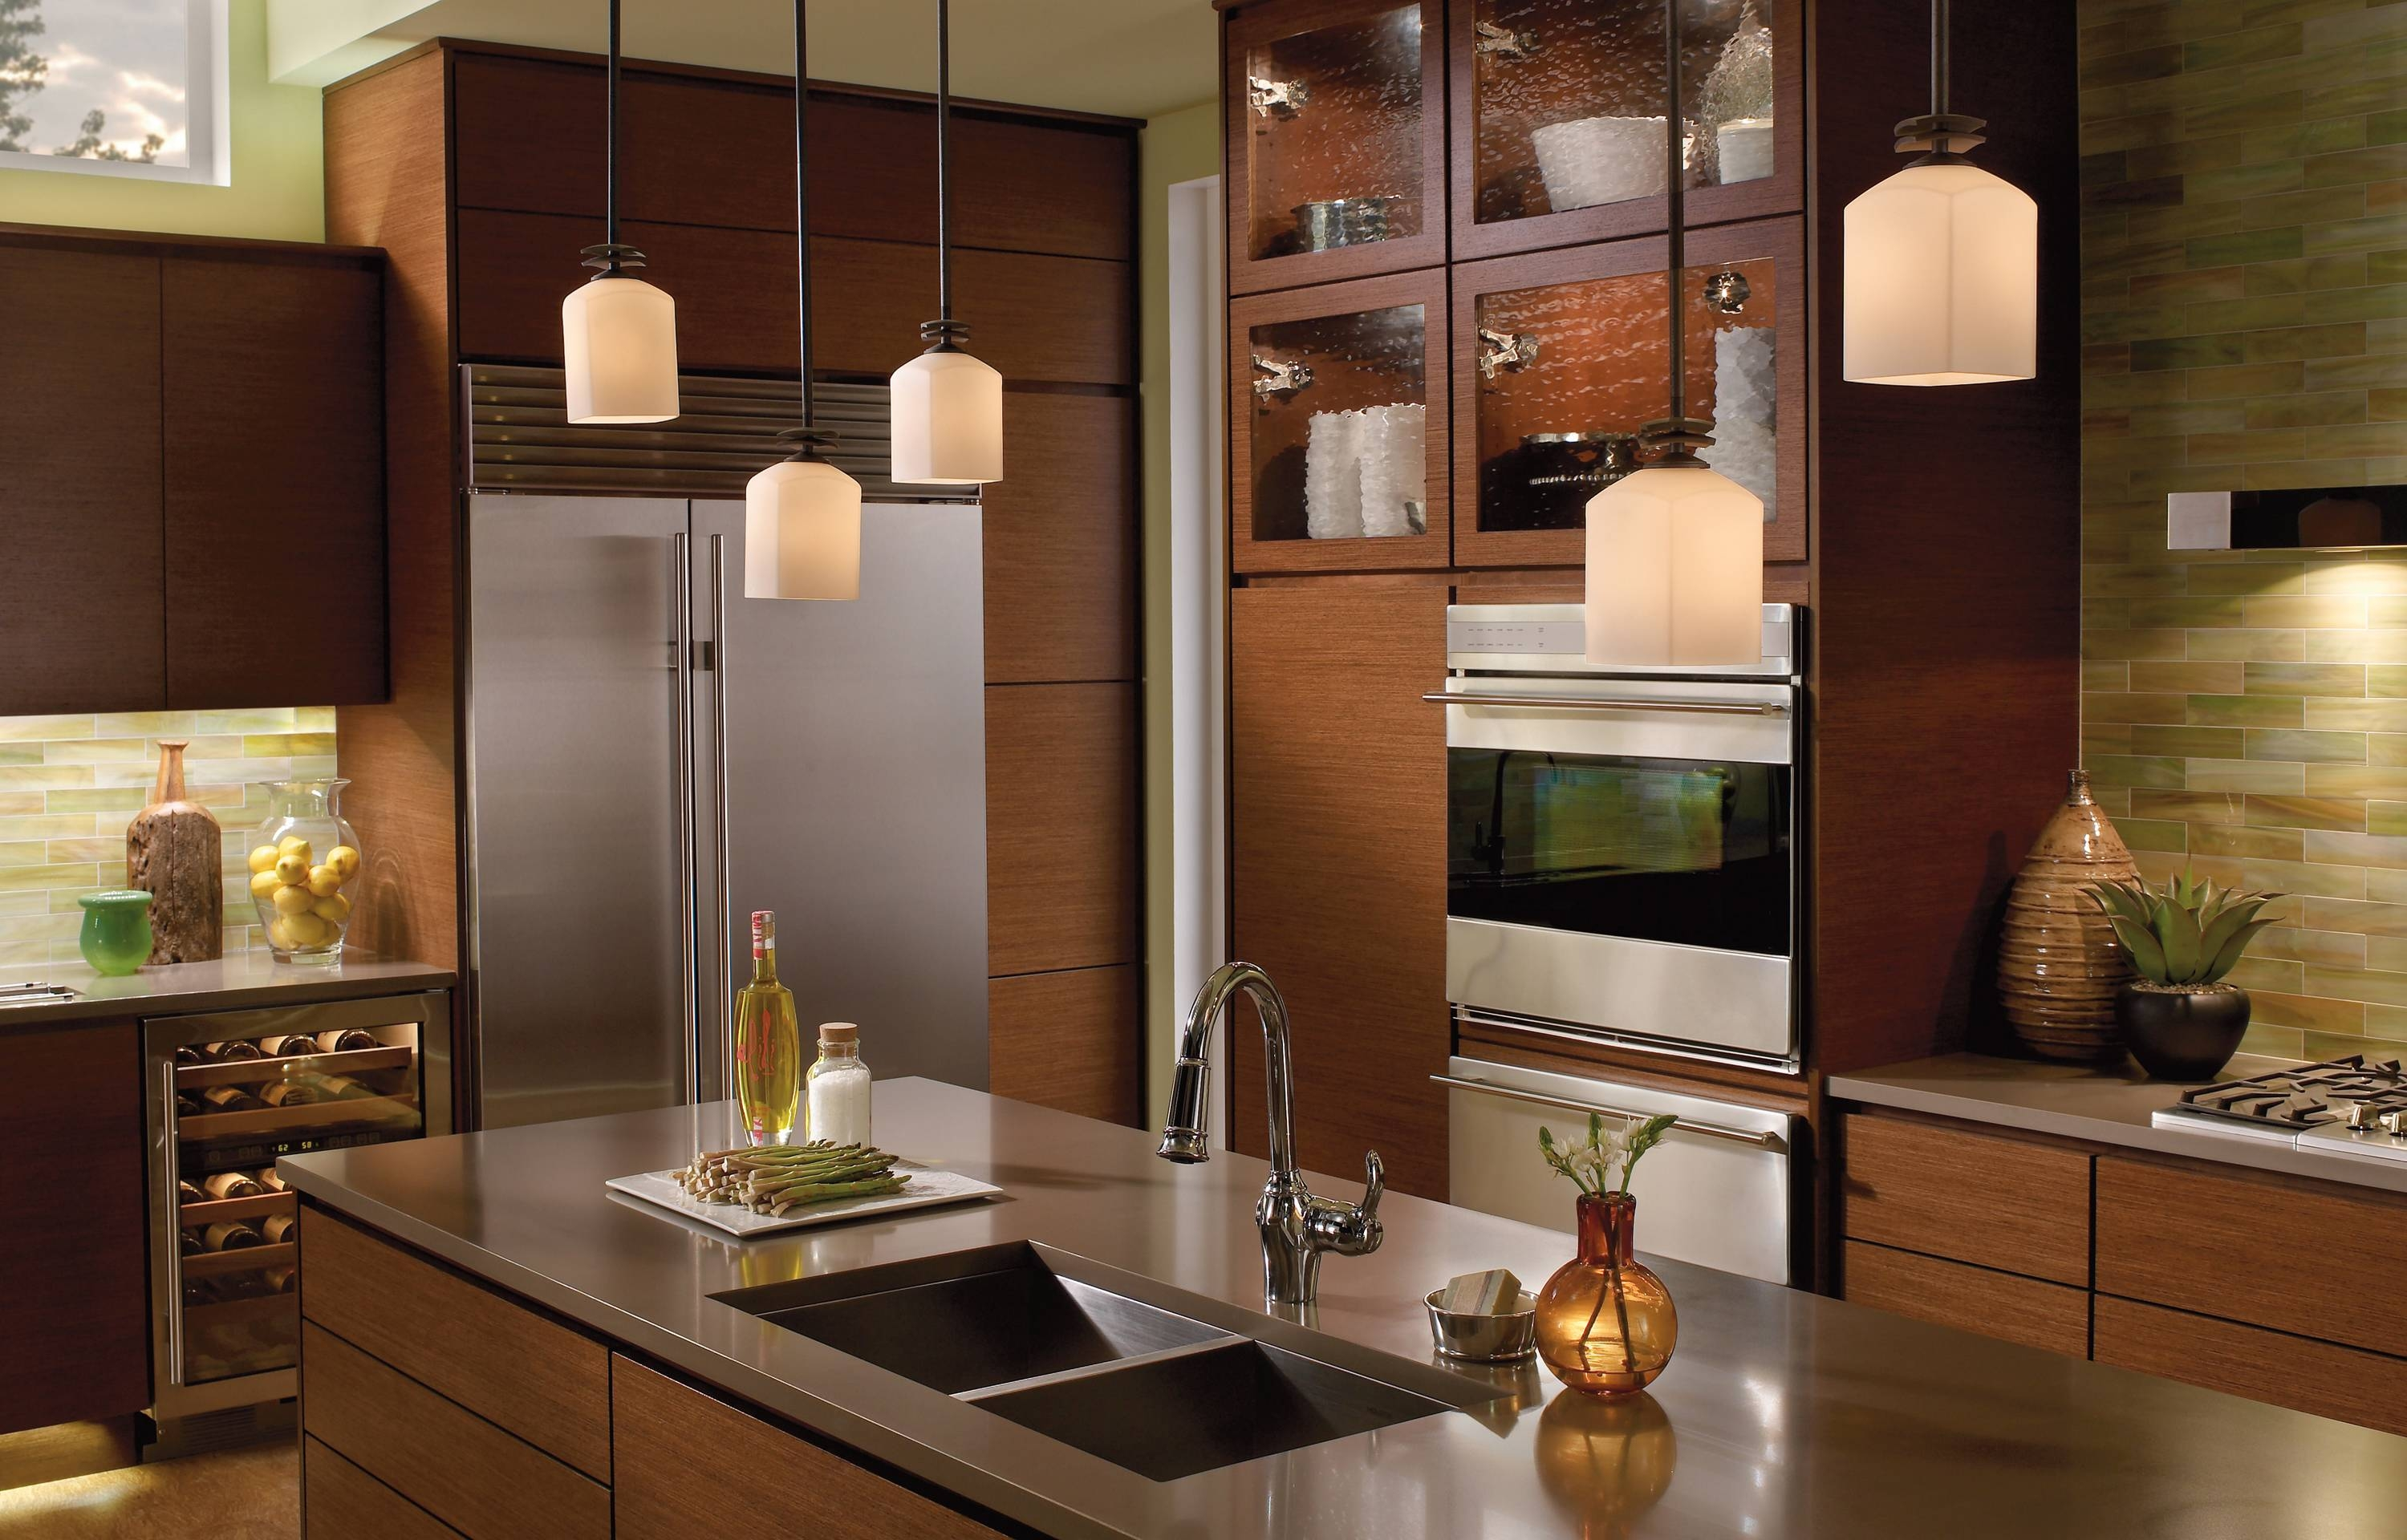 Kitchen : Cute Restaurant Pendant Lighting 909 Within Modern in Asian Style Pendant Lights (Image 12 of 15)